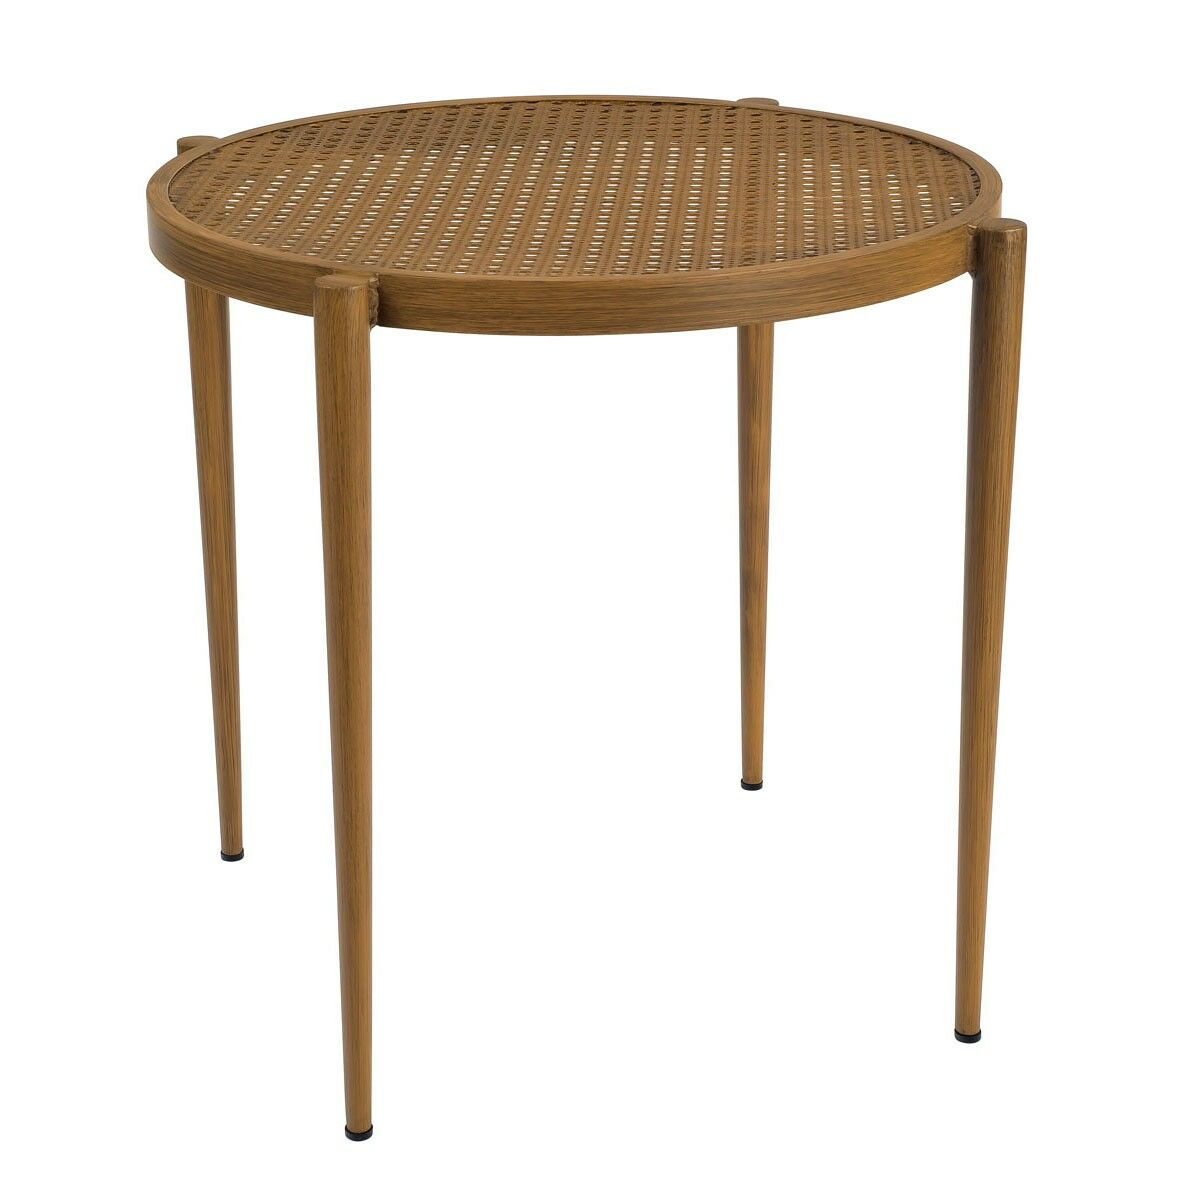 Parc Bistro Table Frame Color: Chestnut Brown